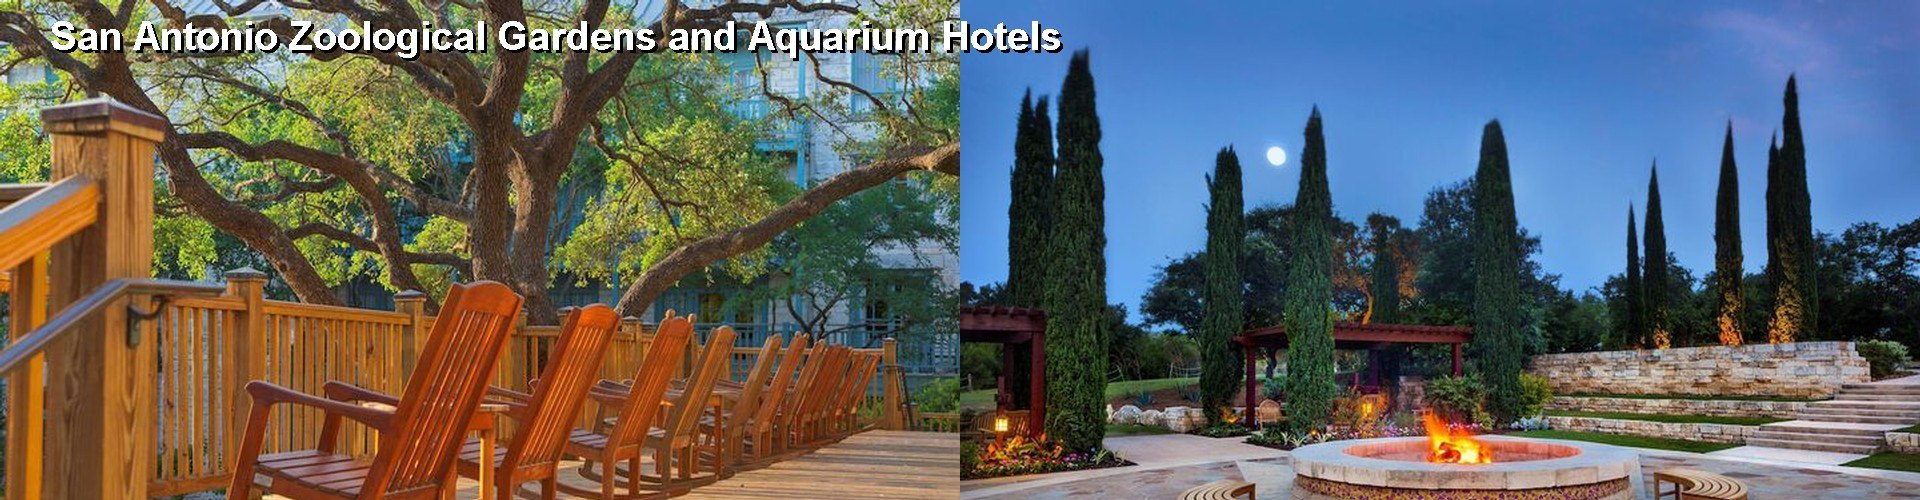 3 Best Hotels near San Antonio Zoological Gardens and Aquarium